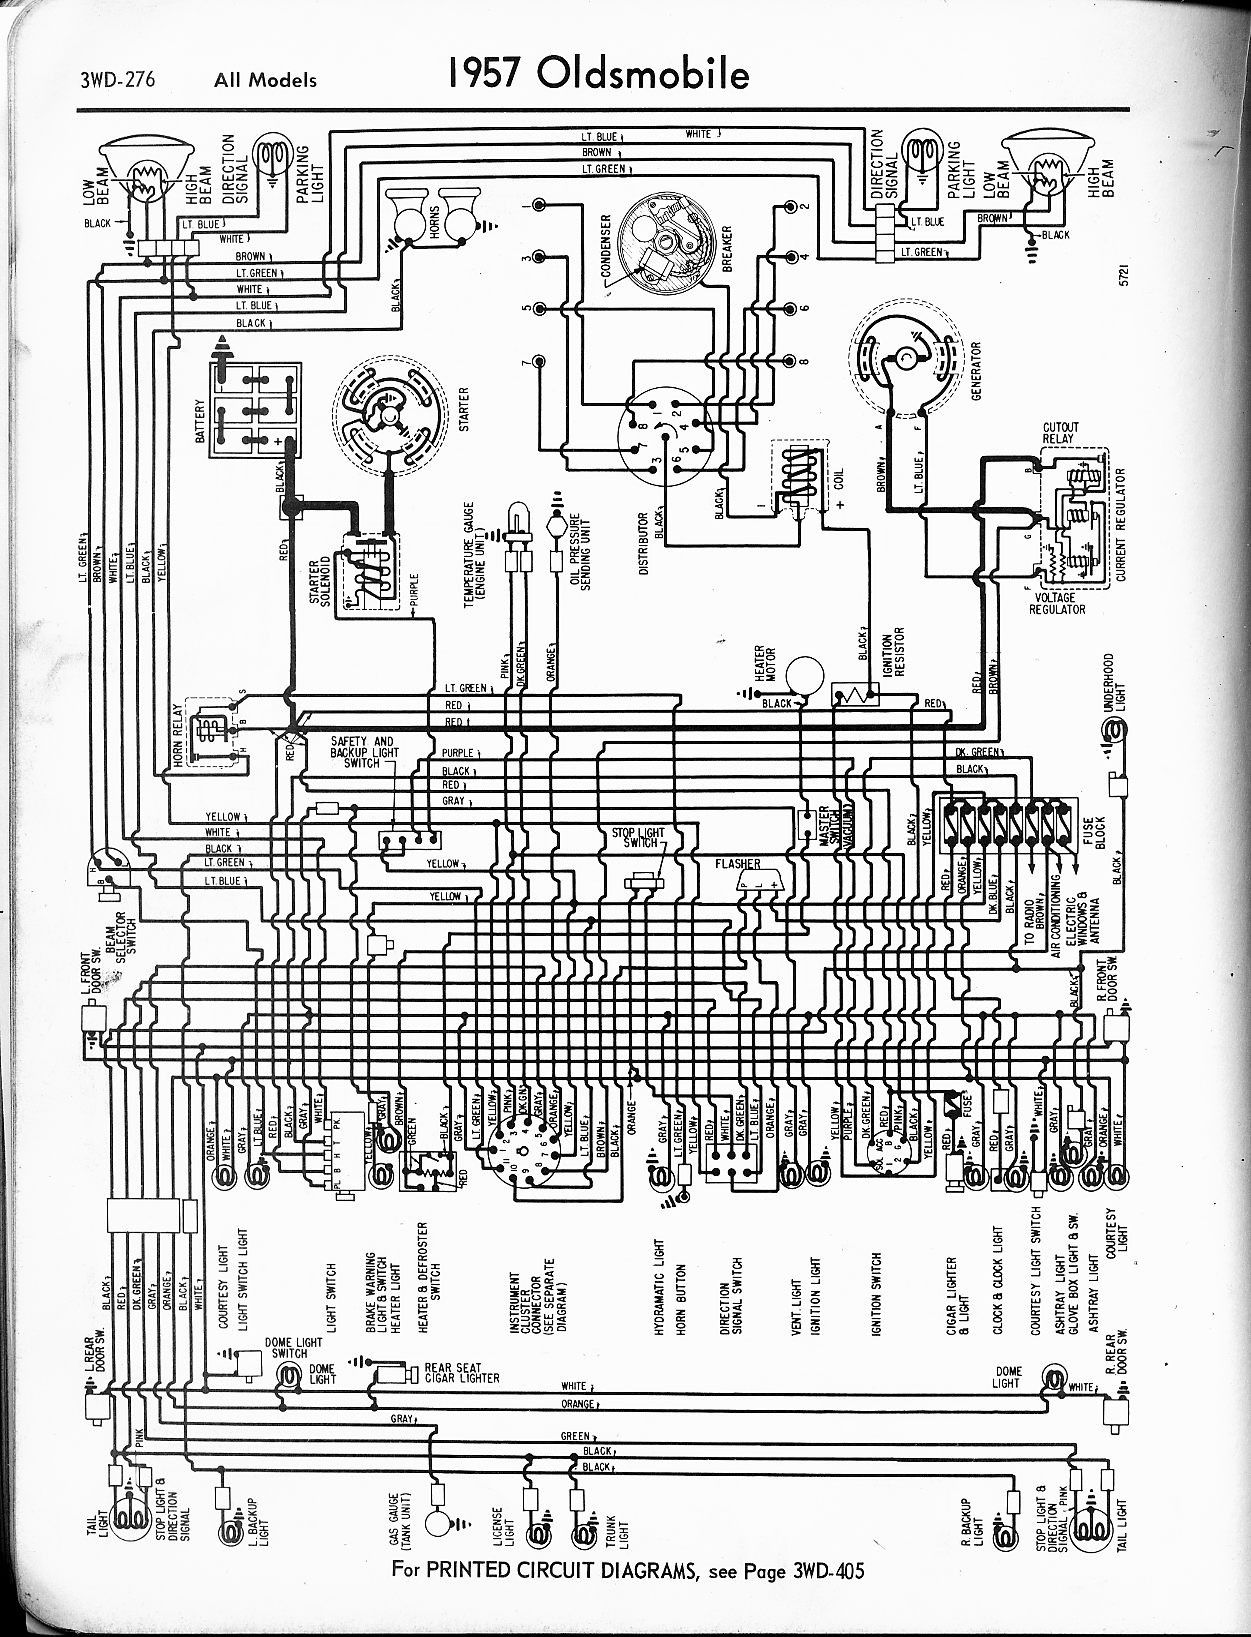 DIAGRAM] 1996 Oldsmobile Cutlass Supreme Wiring Diagram FULL Version HD  Quality Wiring Diagram - EBOOKAFRICA.BORGOCONTESSA.ITebookafrica.borgocontessa.it